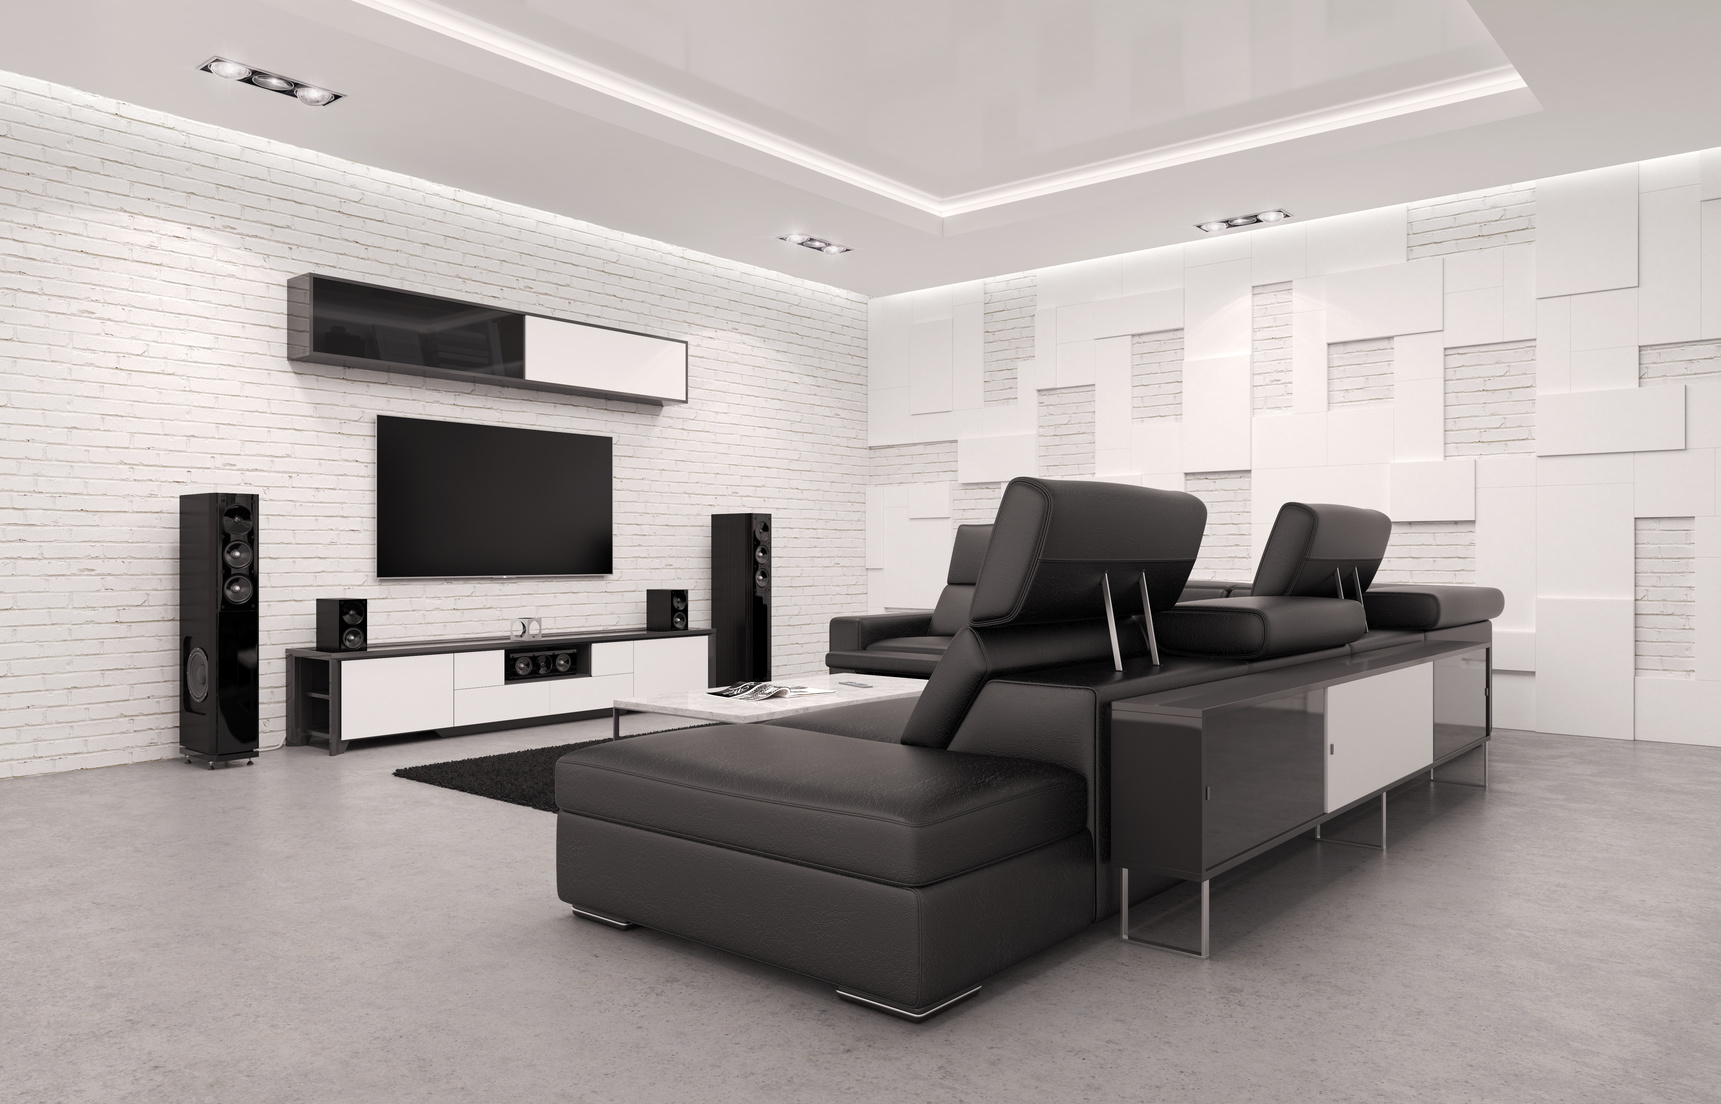 panneau acoustique cinema maison ventana blog. Black Bedroom Furniture Sets. Home Design Ideas